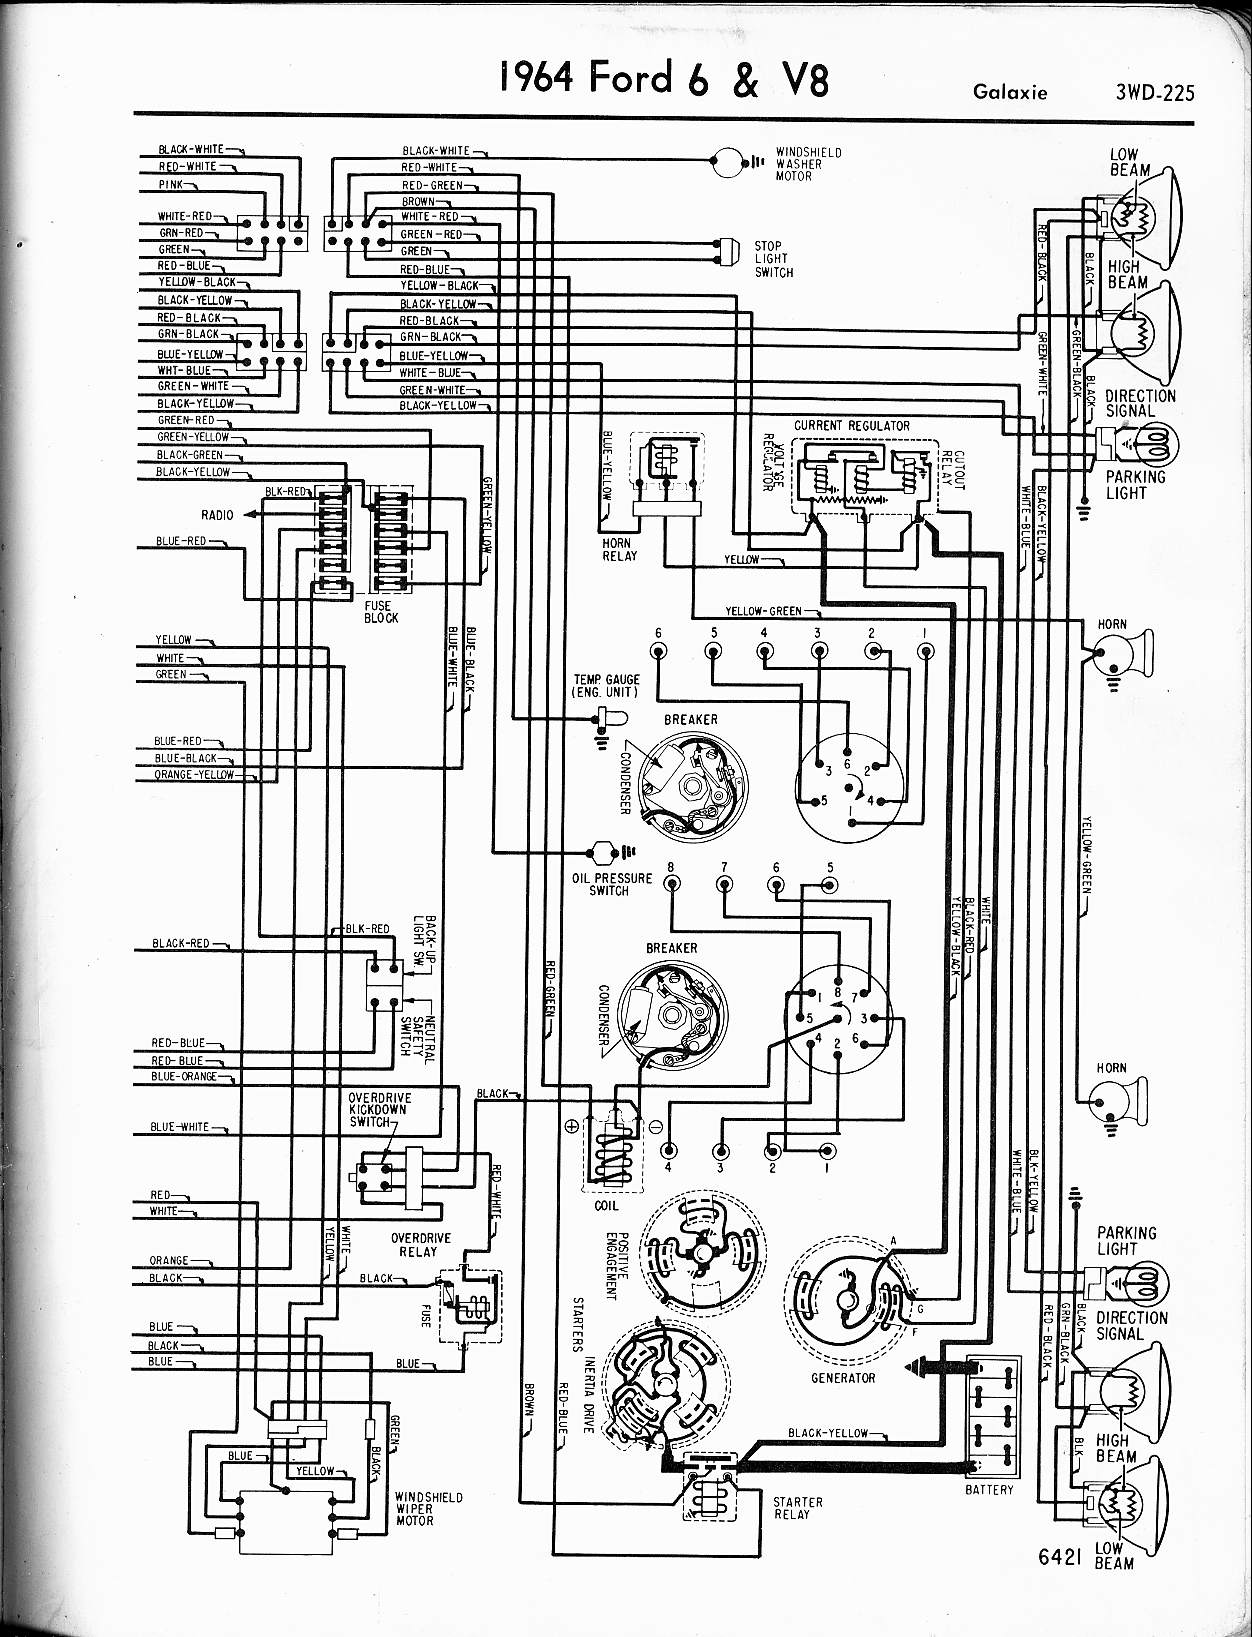 hight resolution of 1964 ford galaxie wiring diagram wiring diagram database wiring diagram 1964 ford galaxie ignition switch wiring 1964 ford